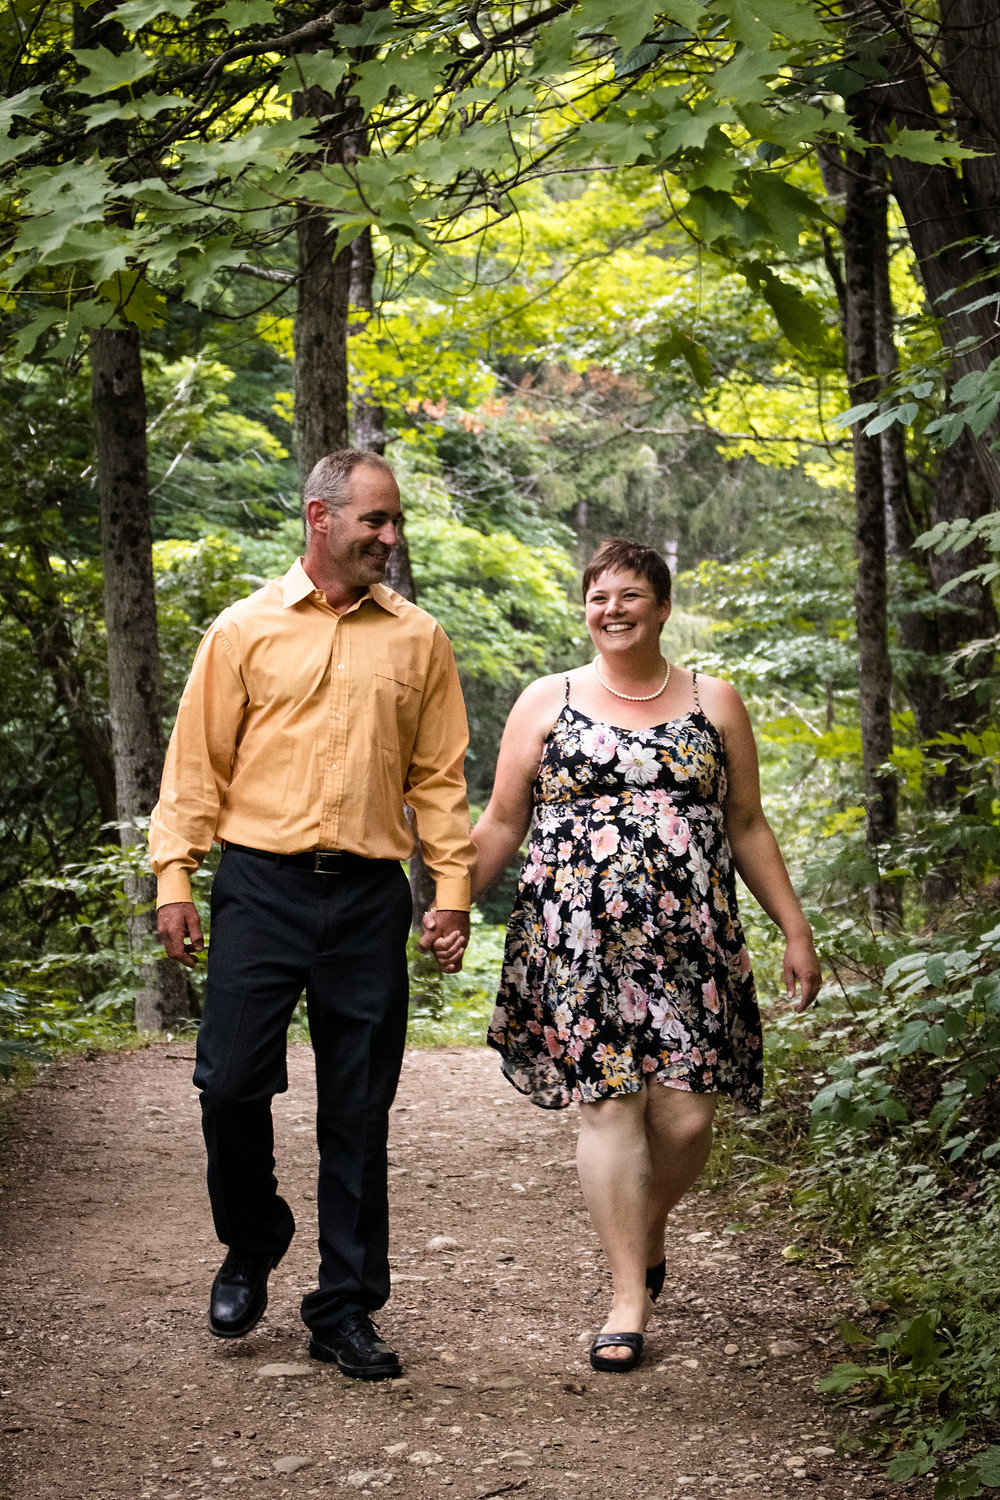 Engagement Photo at Hogg's Falls in Flesherton Ontario by Kelsey Bowles Media